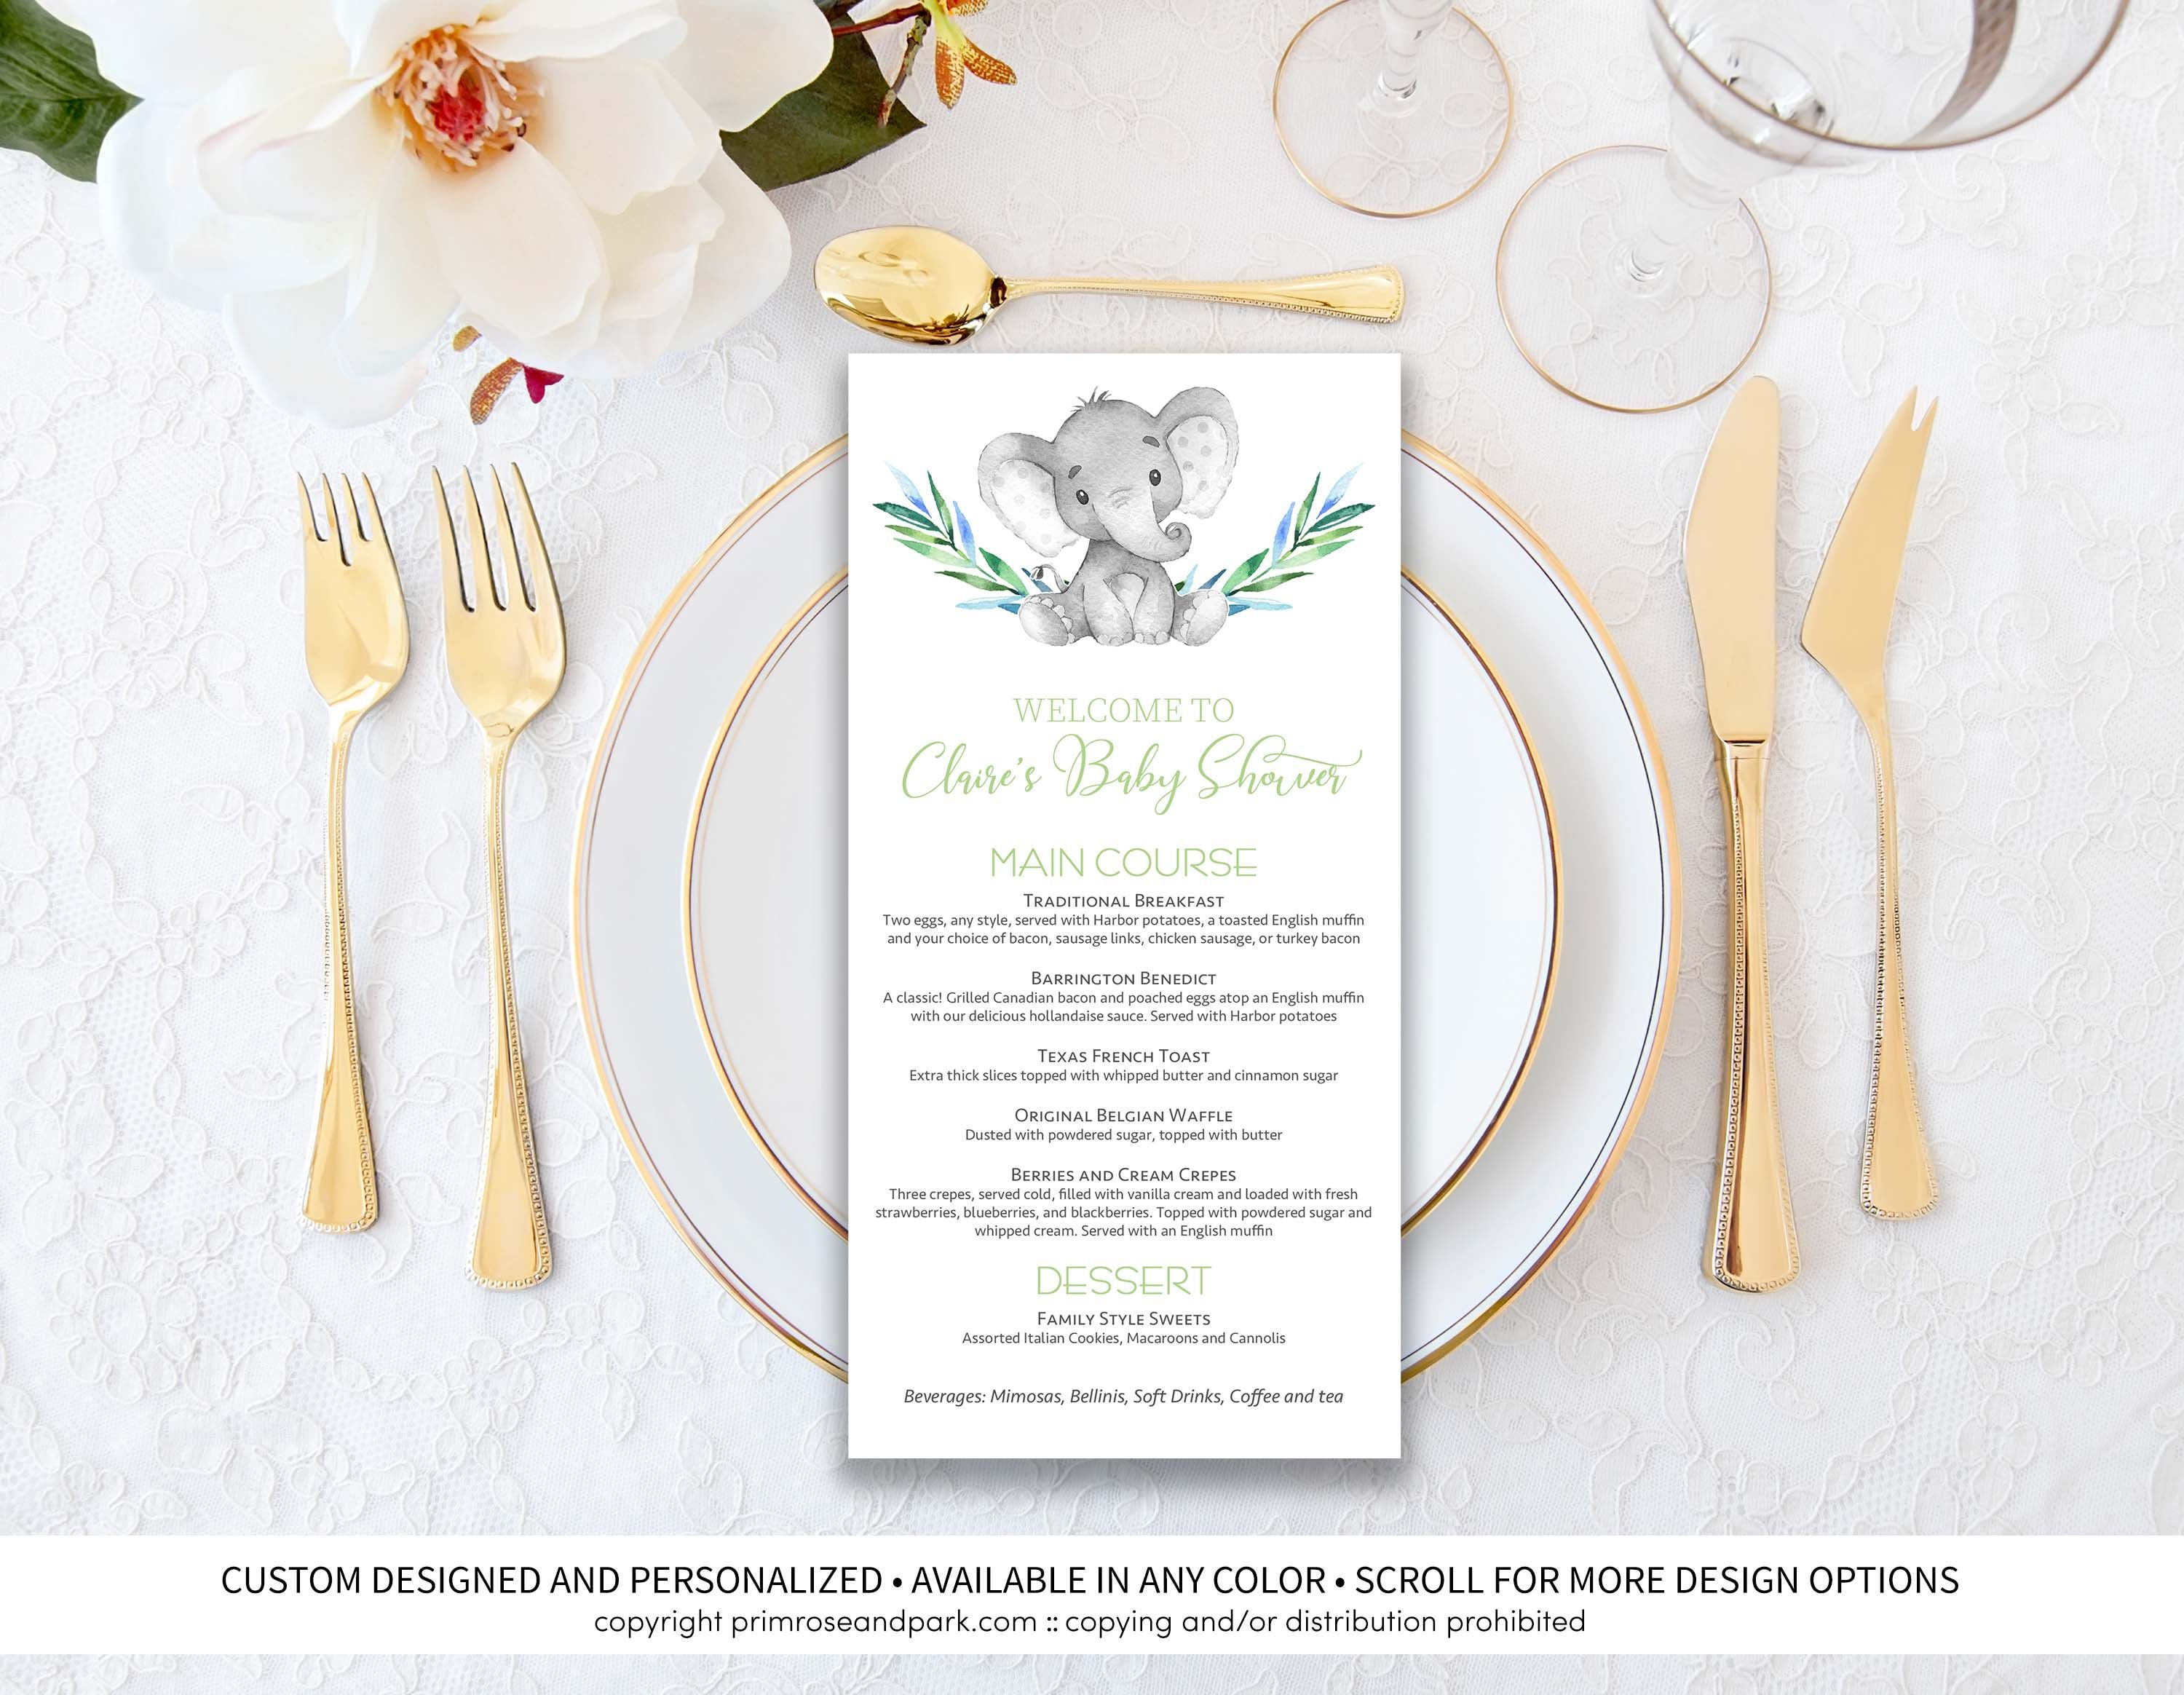 010 Stunning Baby Shower Menu Template Idea  Templates Lunch Printable DownloadableFull